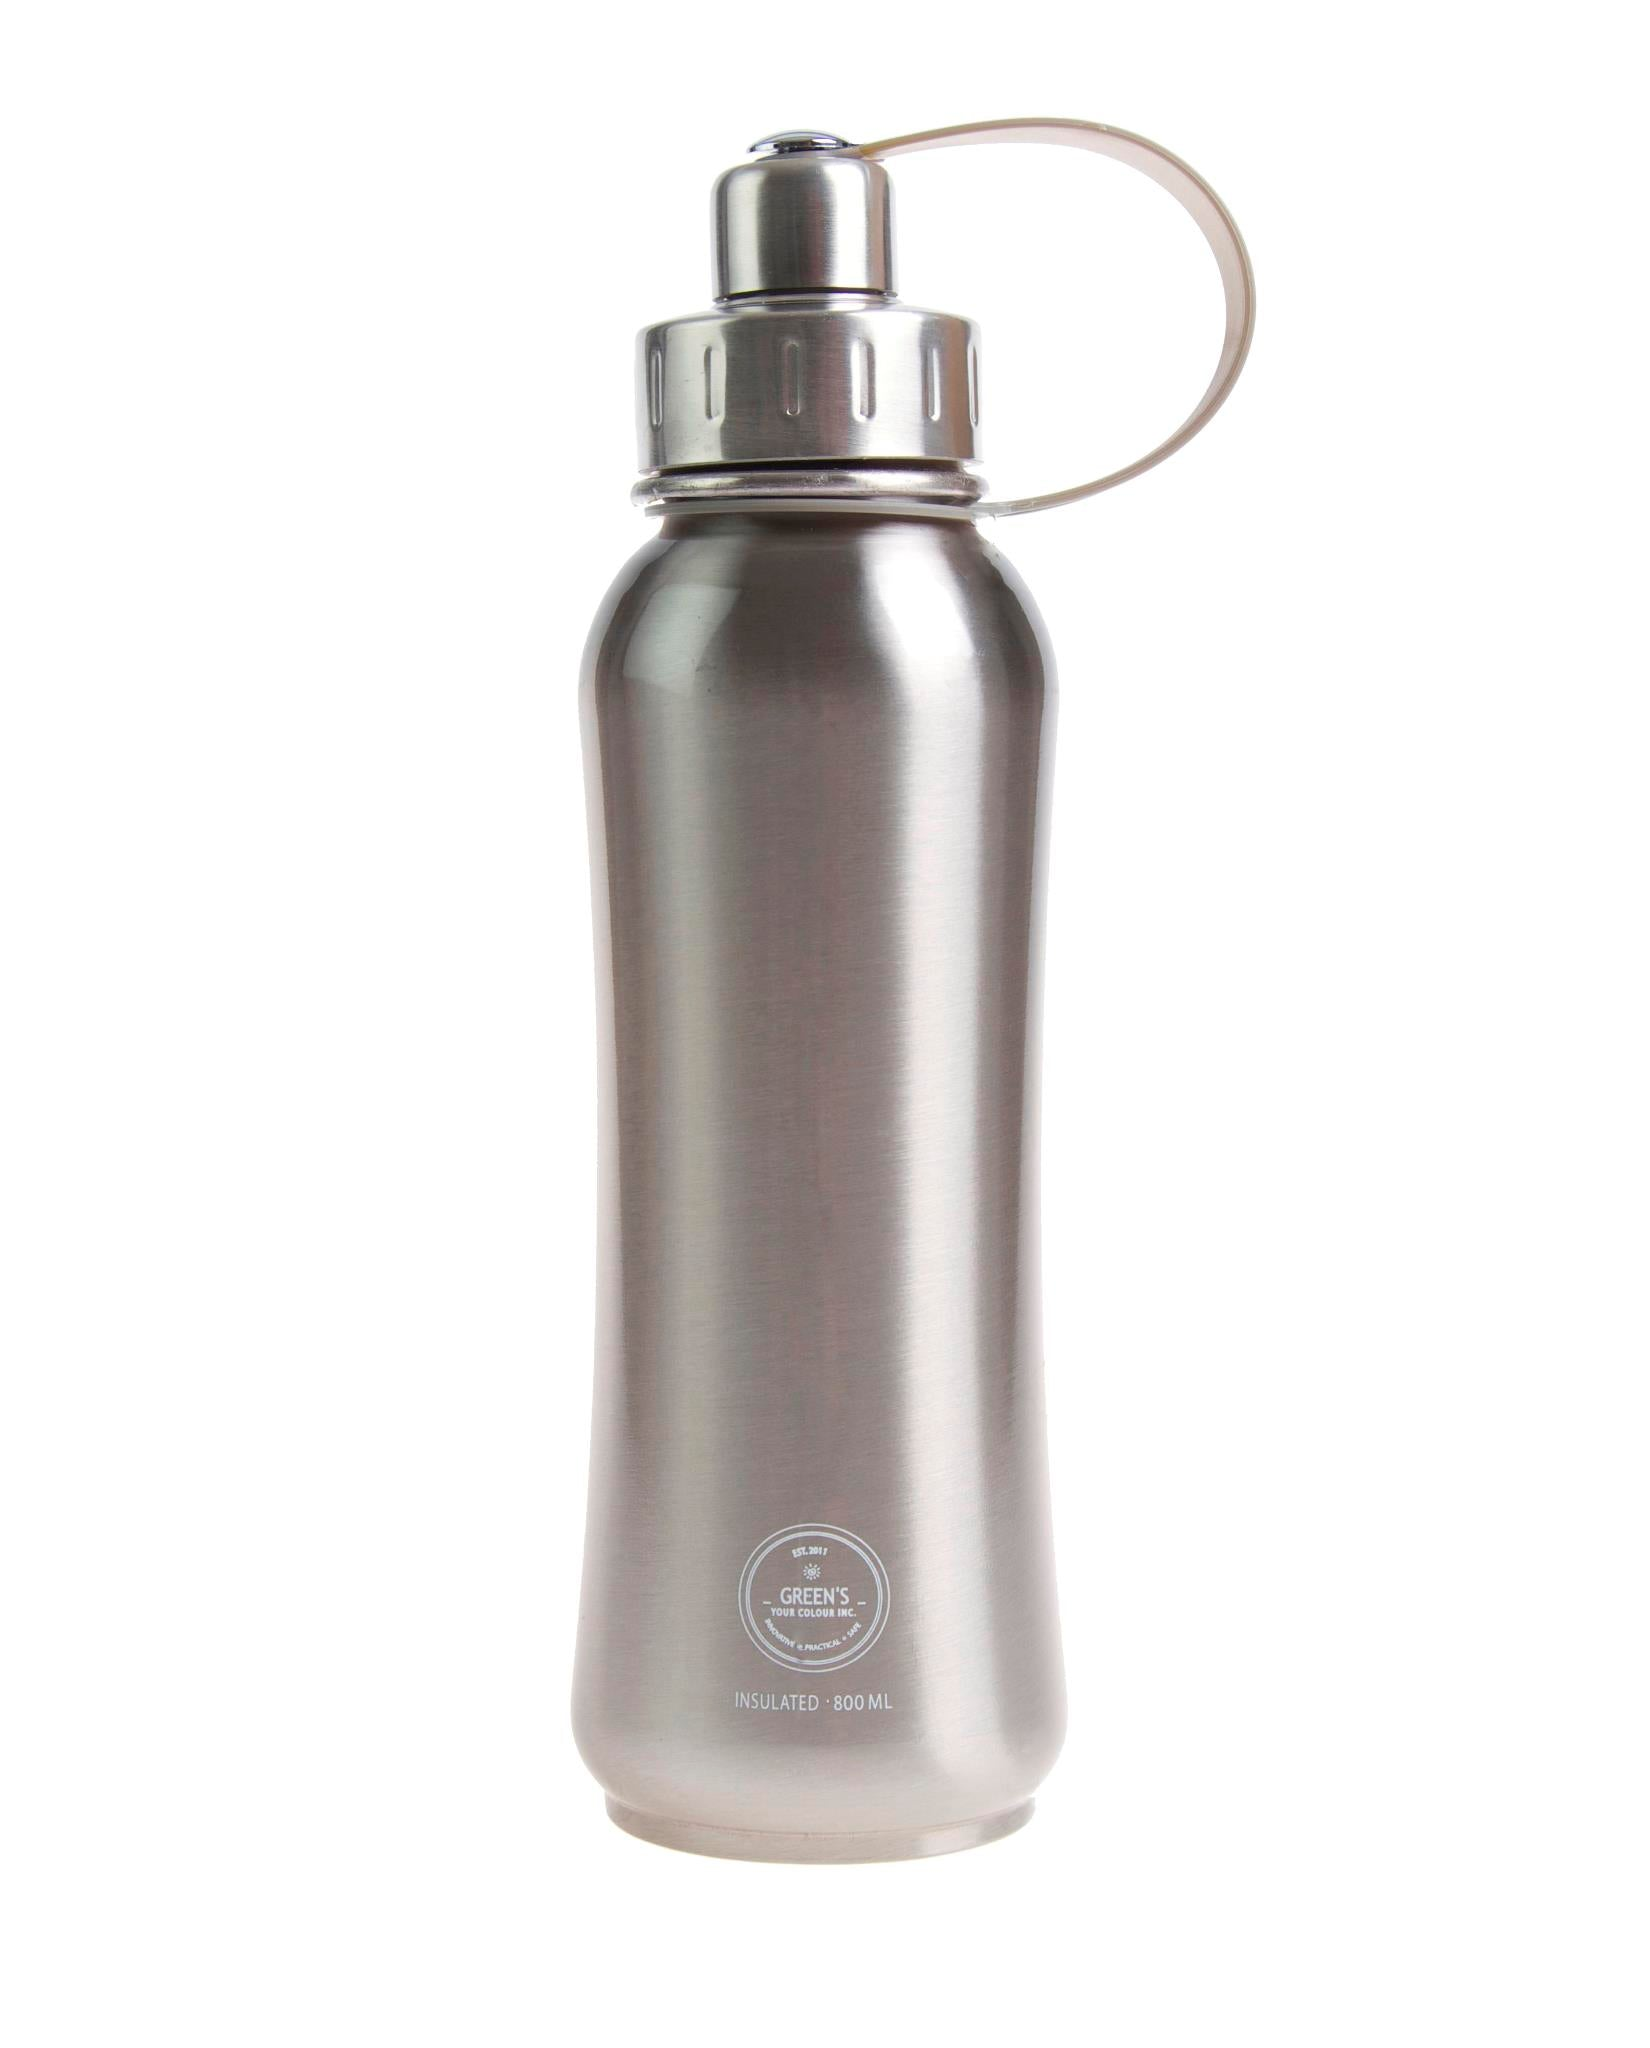 800 ml Tin Man triple insulated vacuum stainless steel water bottle silver lid